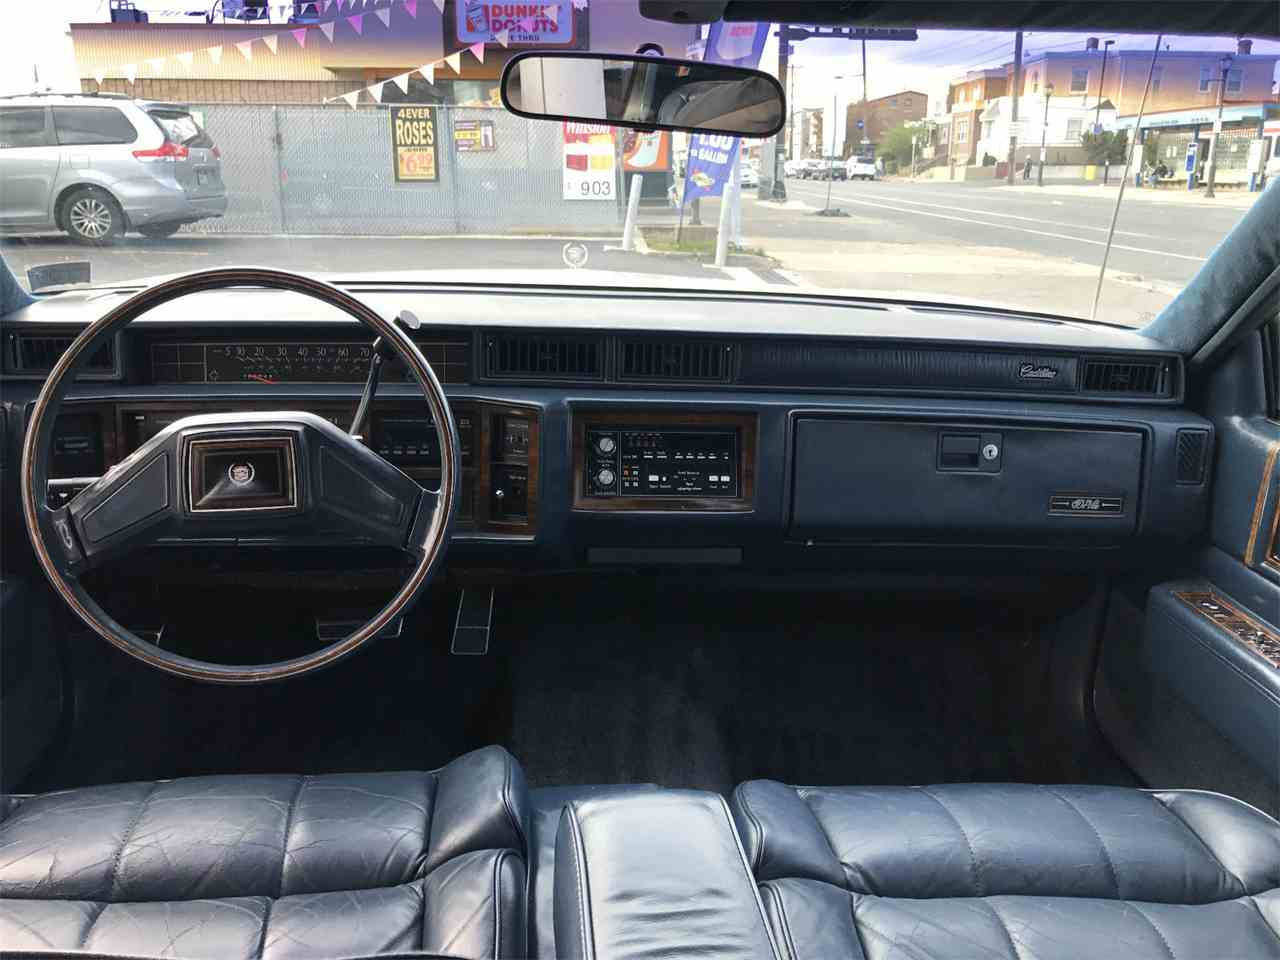 Large Picture of 1987 Cadillac DeVille located in Penn Valley Pennsylvania - $4,995.00 Offered by a Private Seller - KJIN